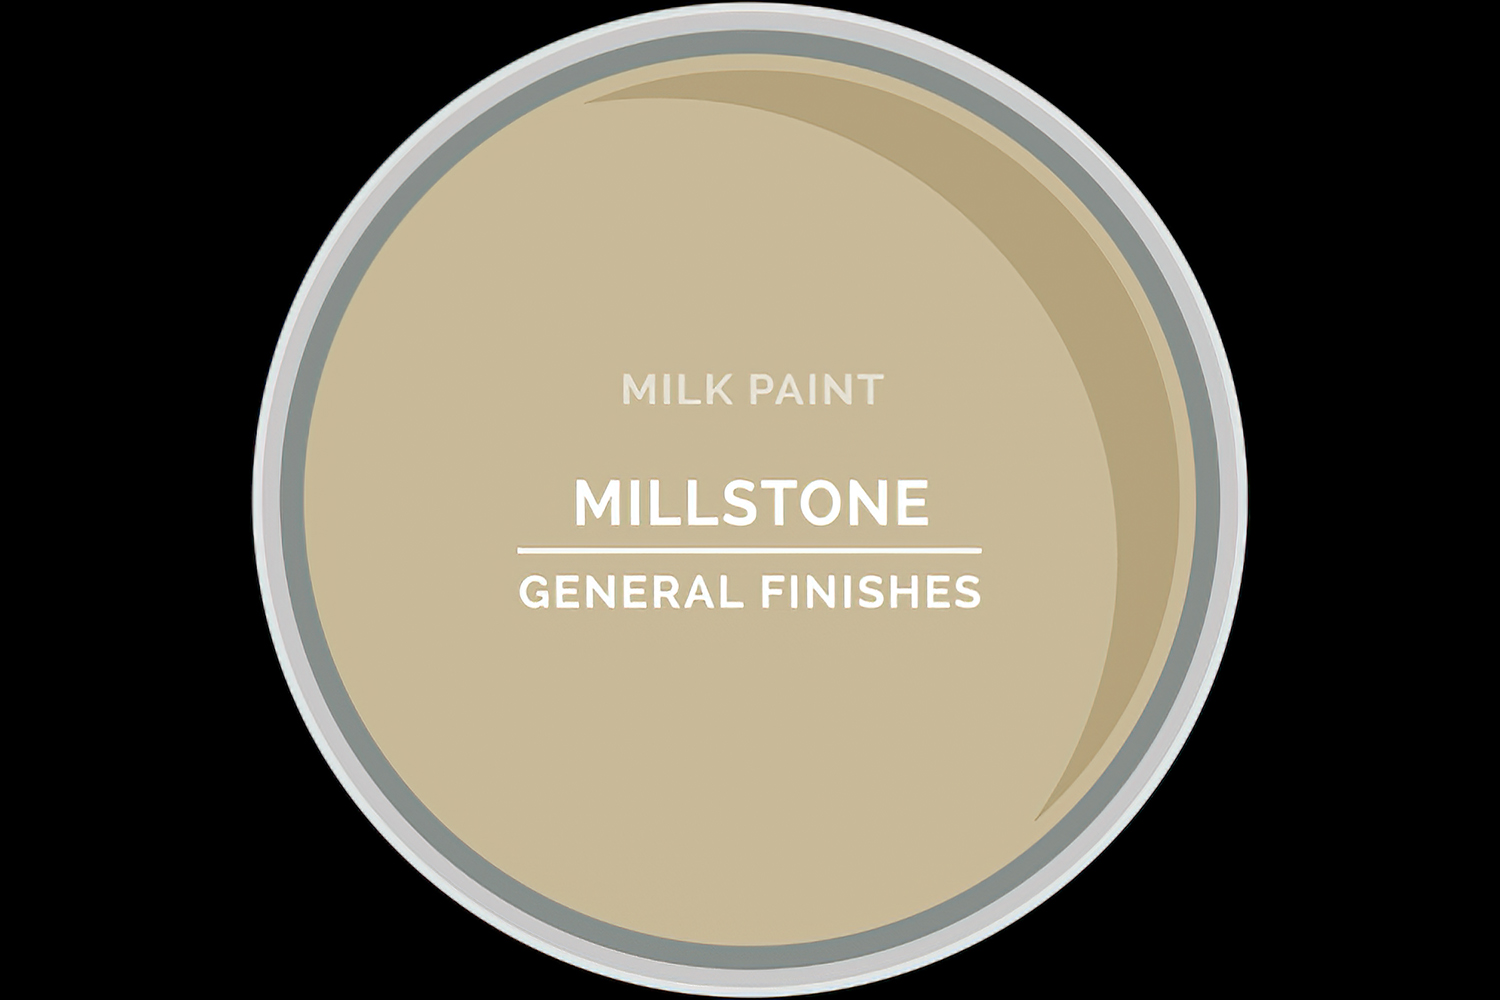 Color Chip Milk Paint MILLSTONE General Finishes Copy